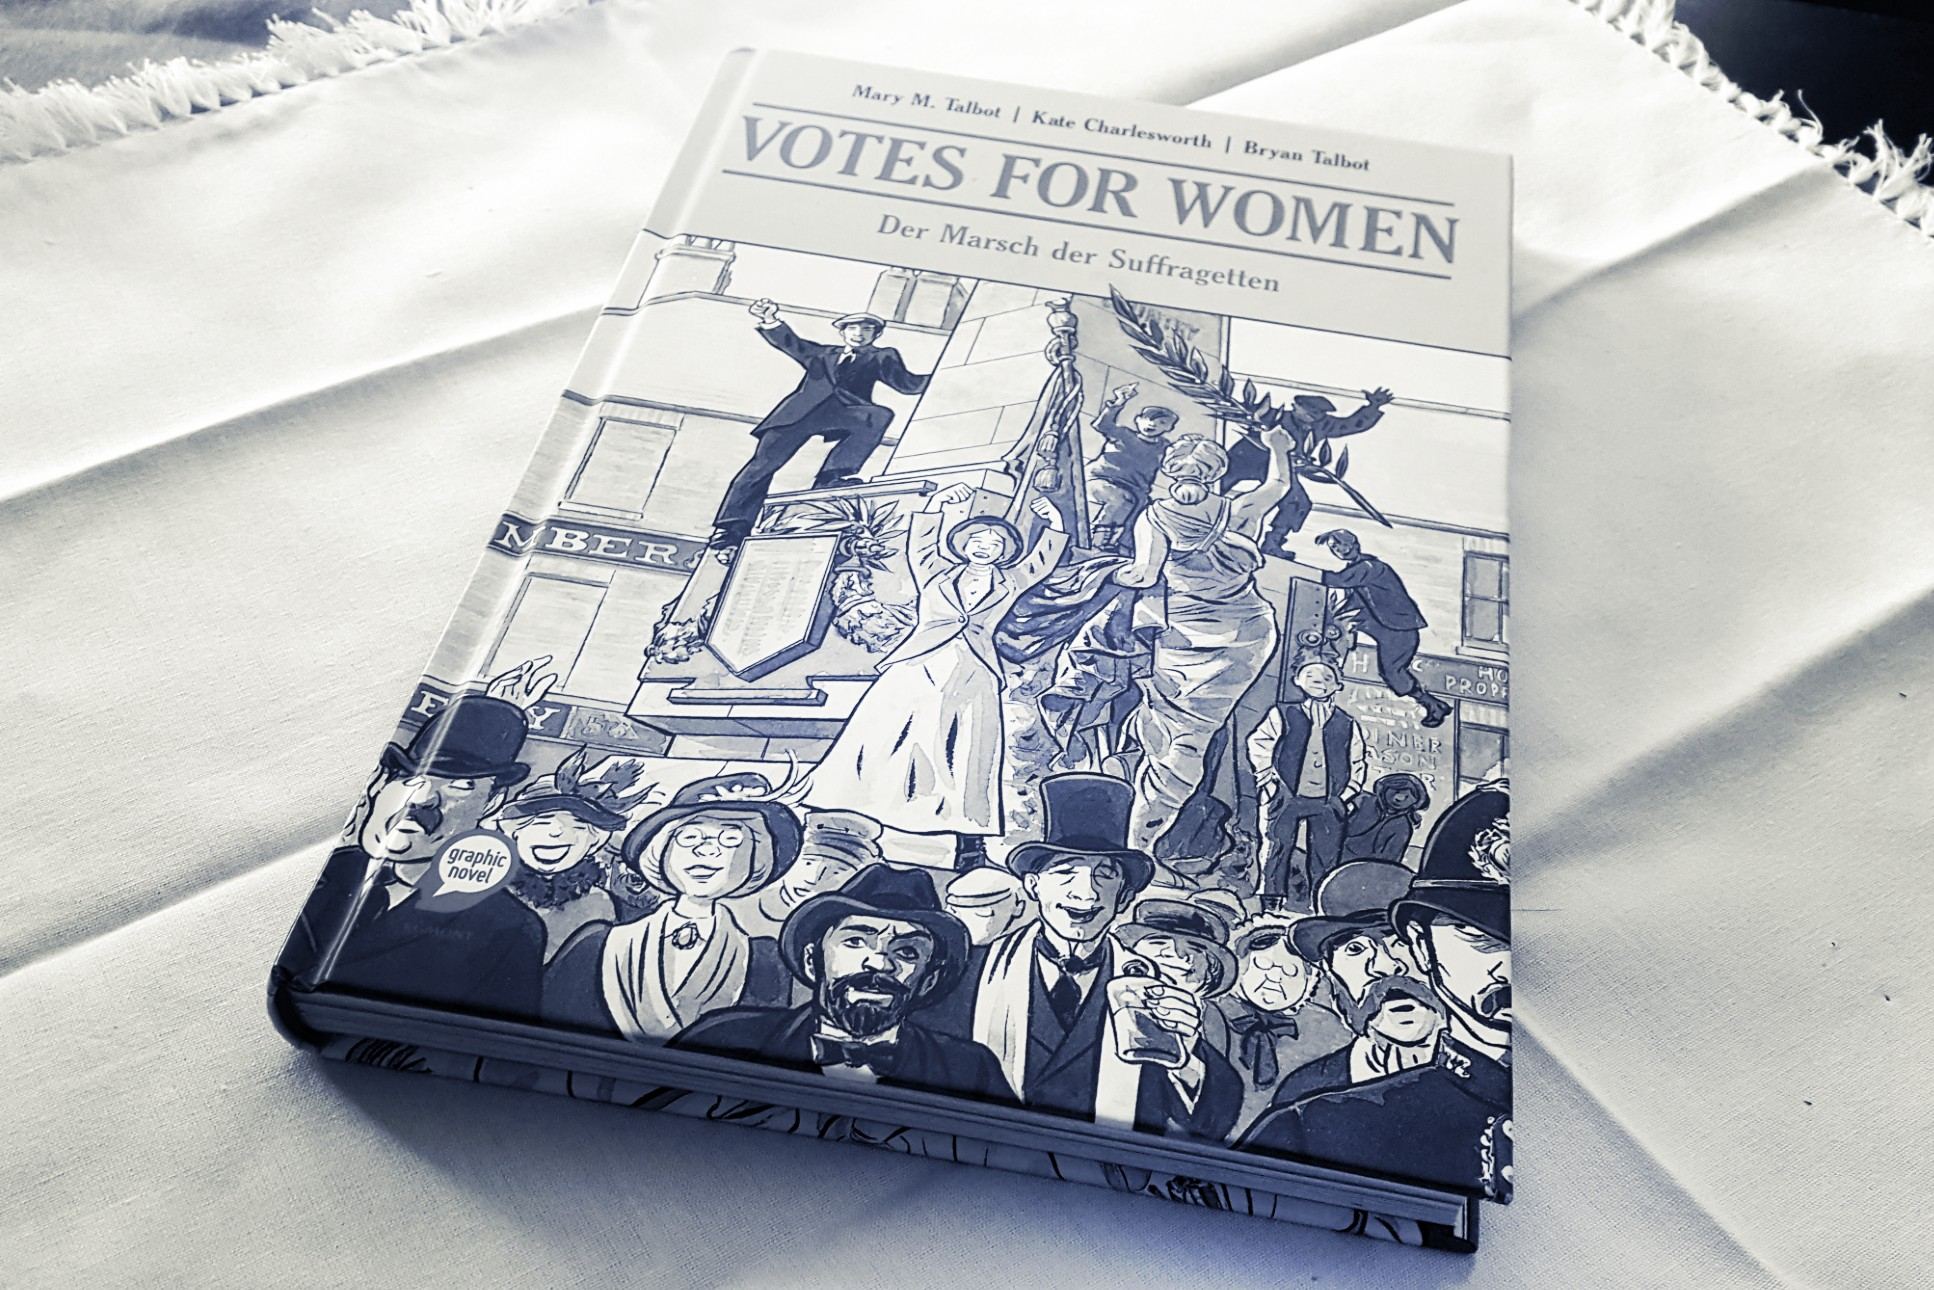 [Rezension] Mary Talbot/Bryan Talbot/Kate Charlesworth – Votes for Women. Der Marsch der Suffragetten